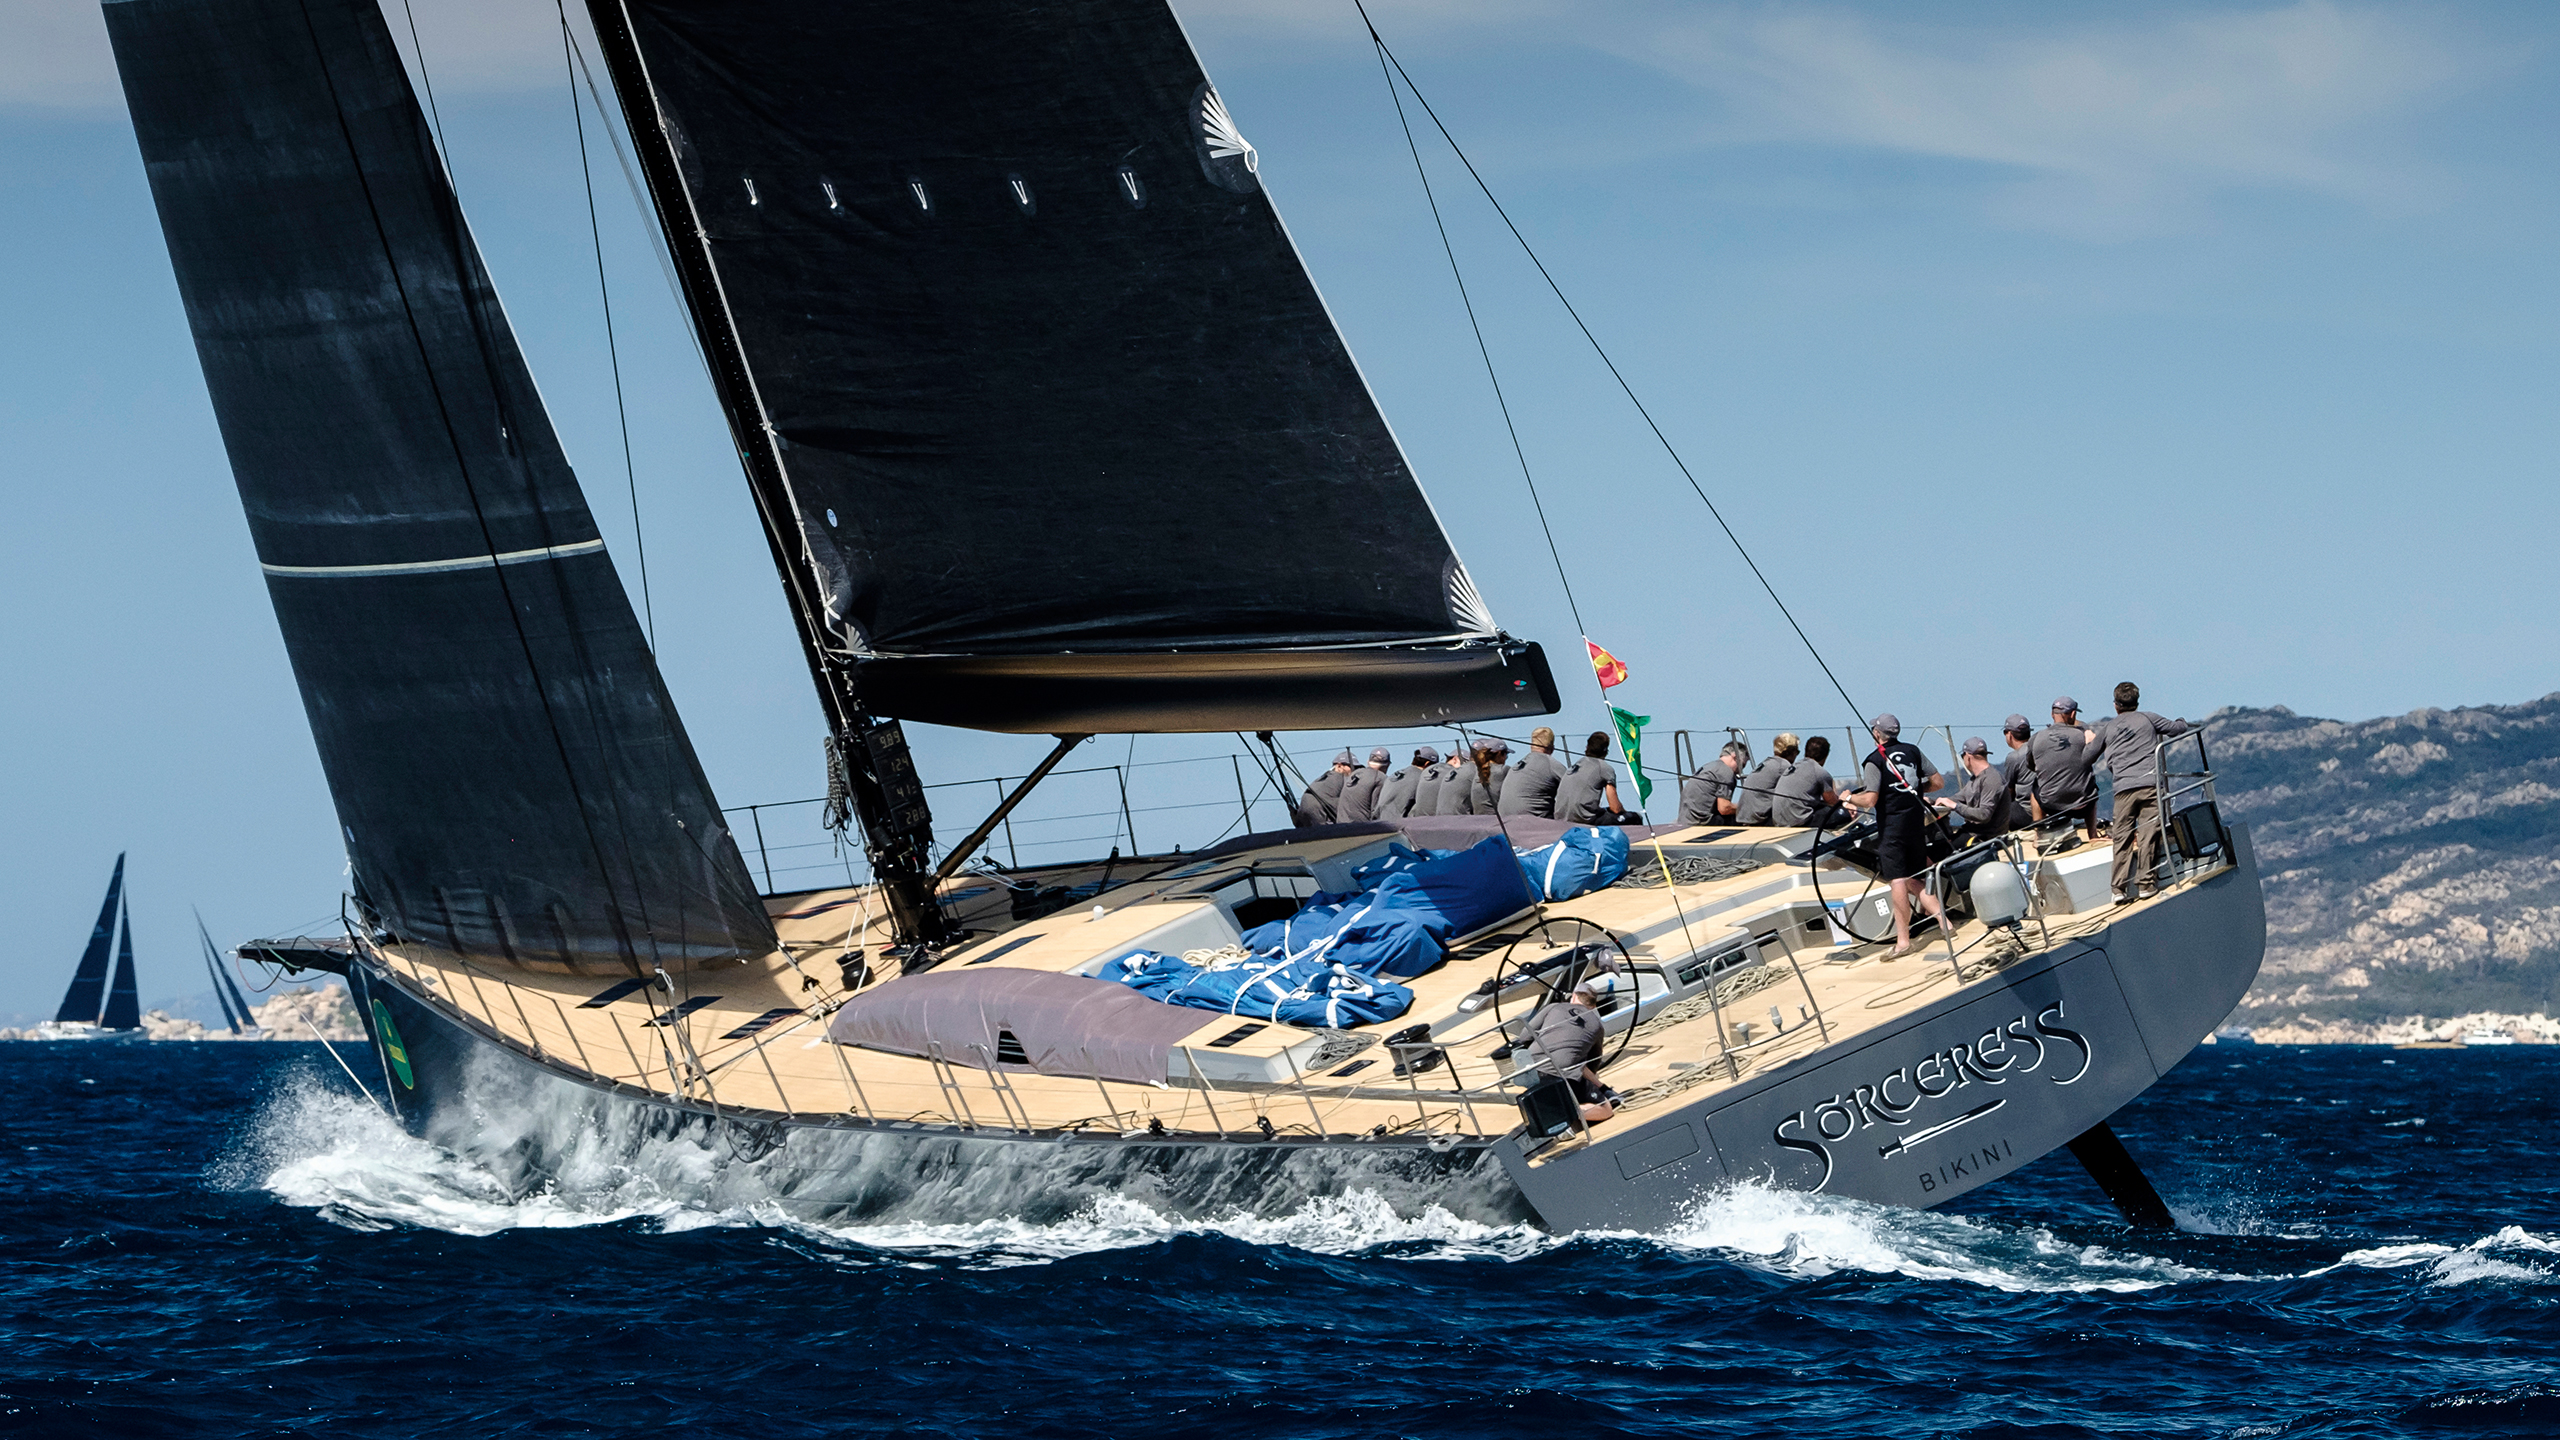 aft-running-shot-of-the-sw96-sailing-yacht-sorceress-credit-carlo-baroncini